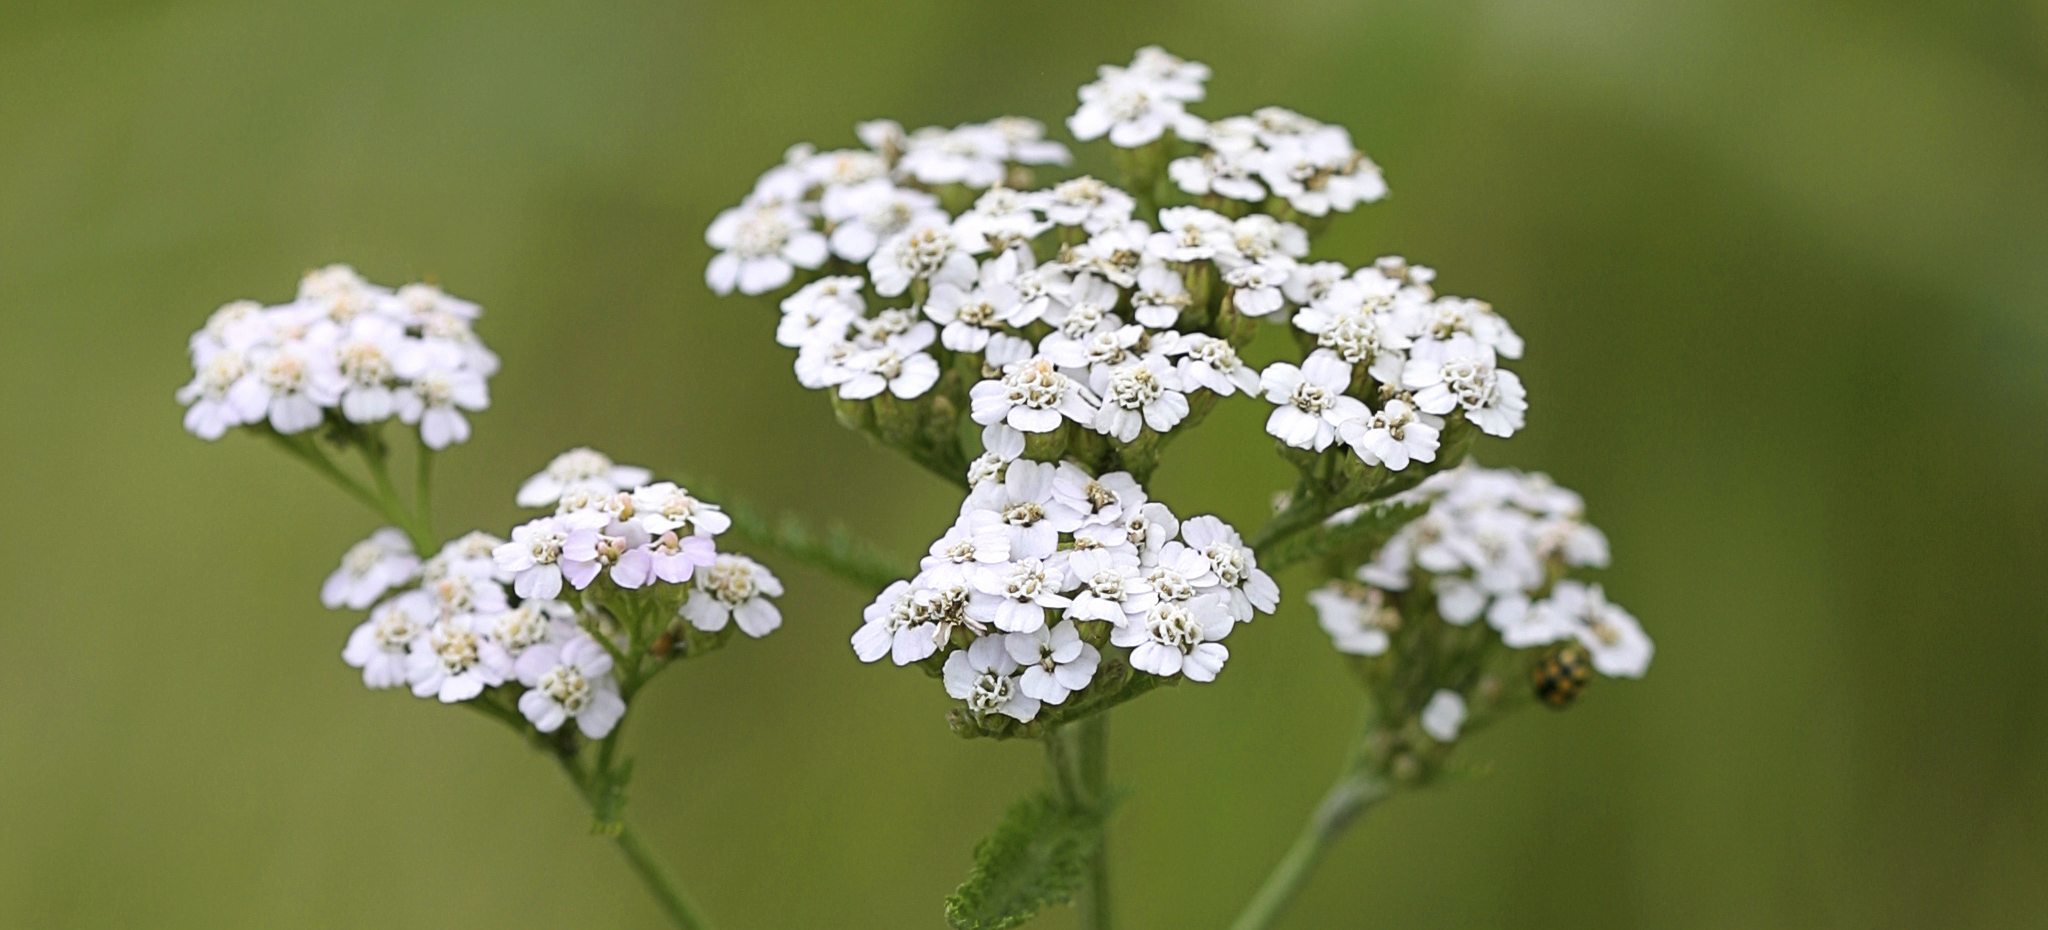 white common yarrow flowers over a blurry background of leaves